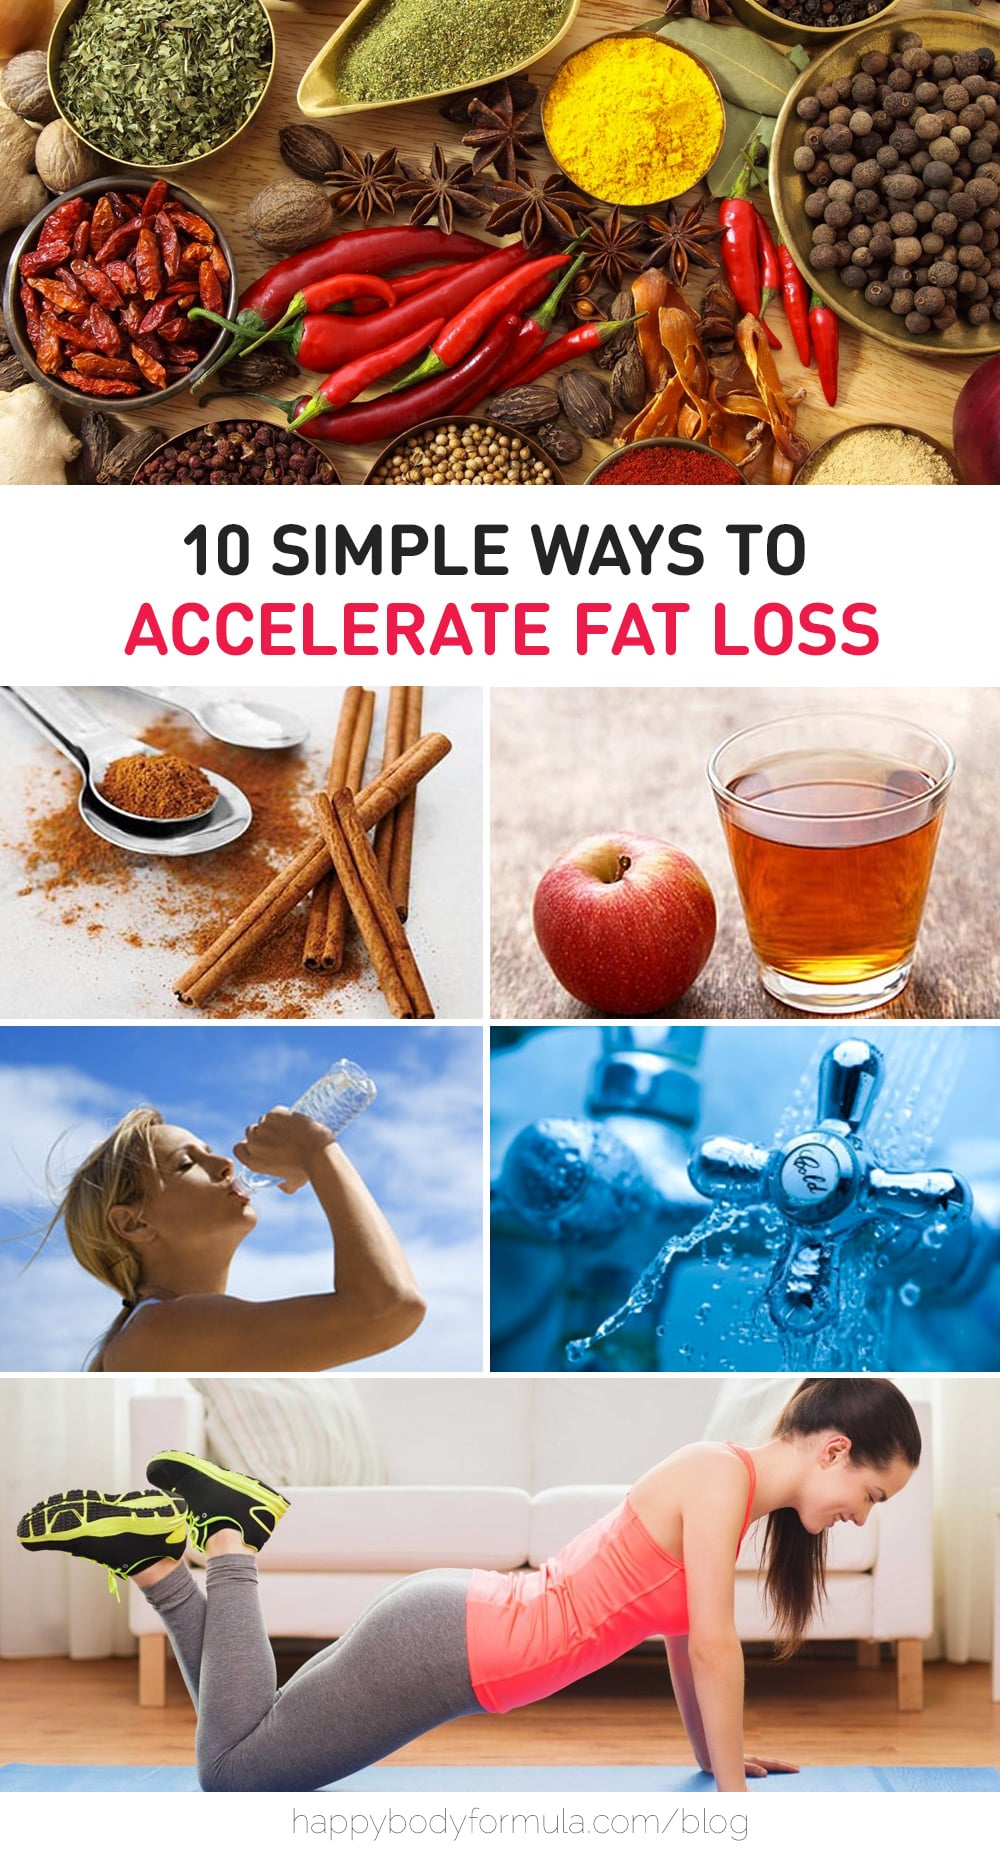 10 Simple Ways To Accelerate Fat Loss | Happybodyformula.com